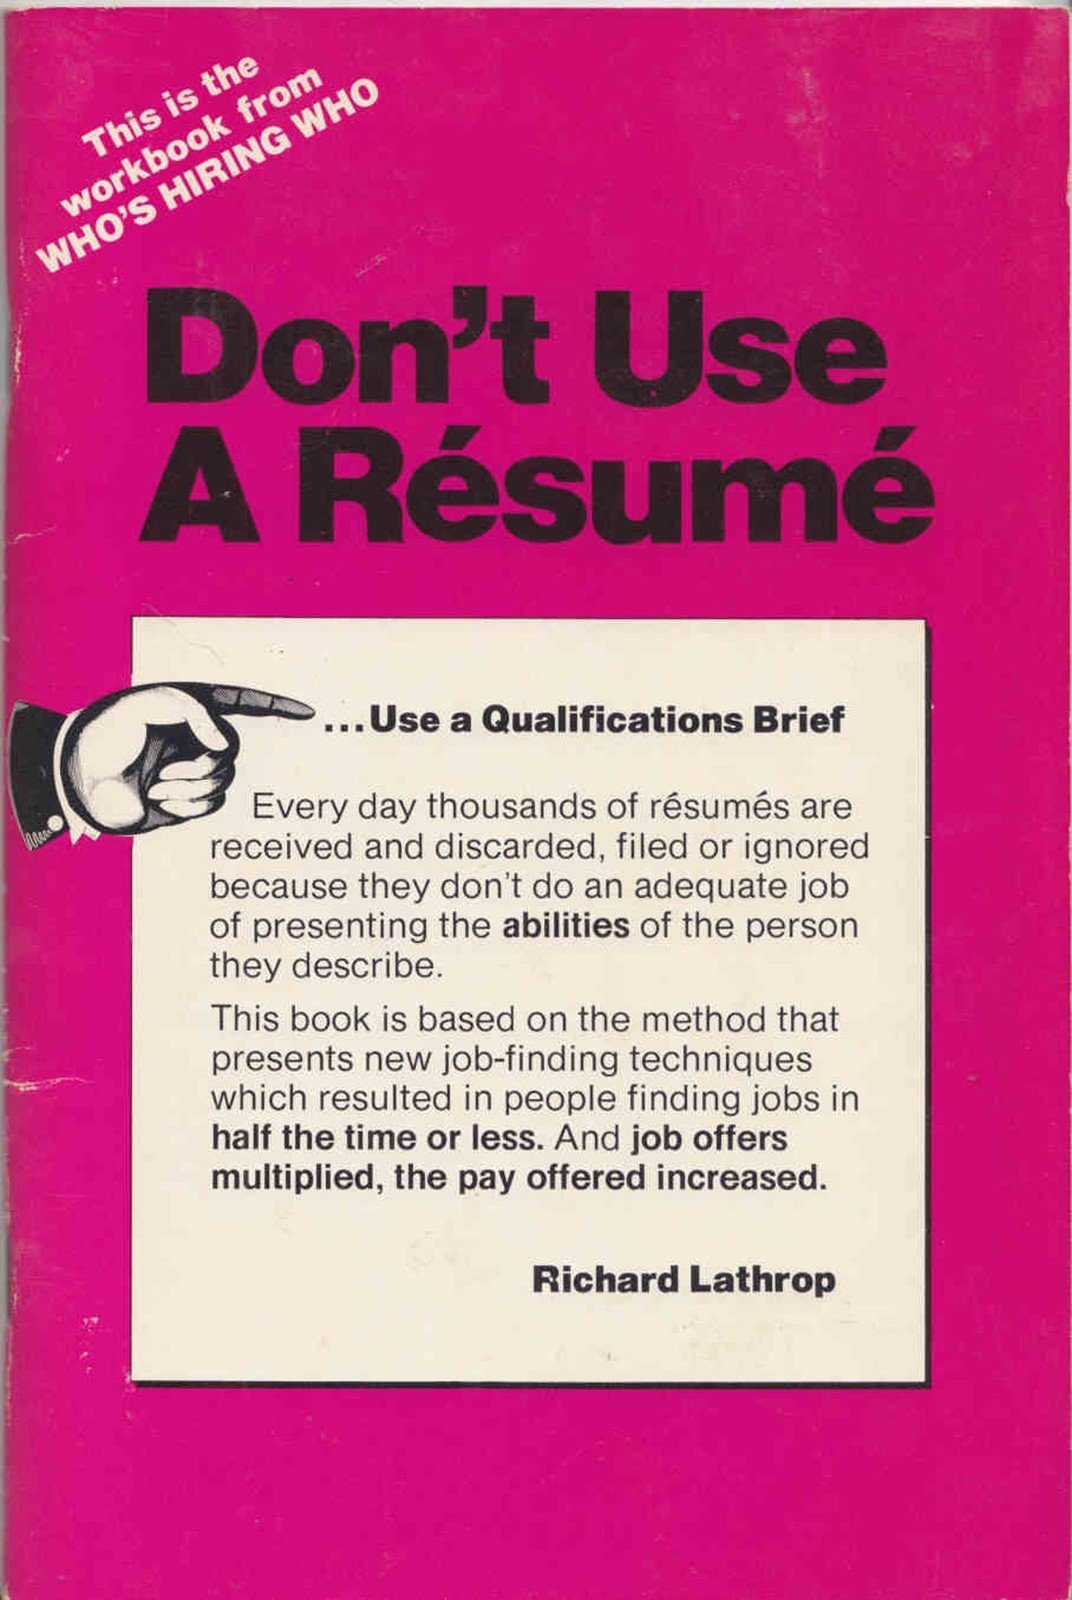 Do Not Use A Resume Use A Qualifications Brief Richard Lathrop